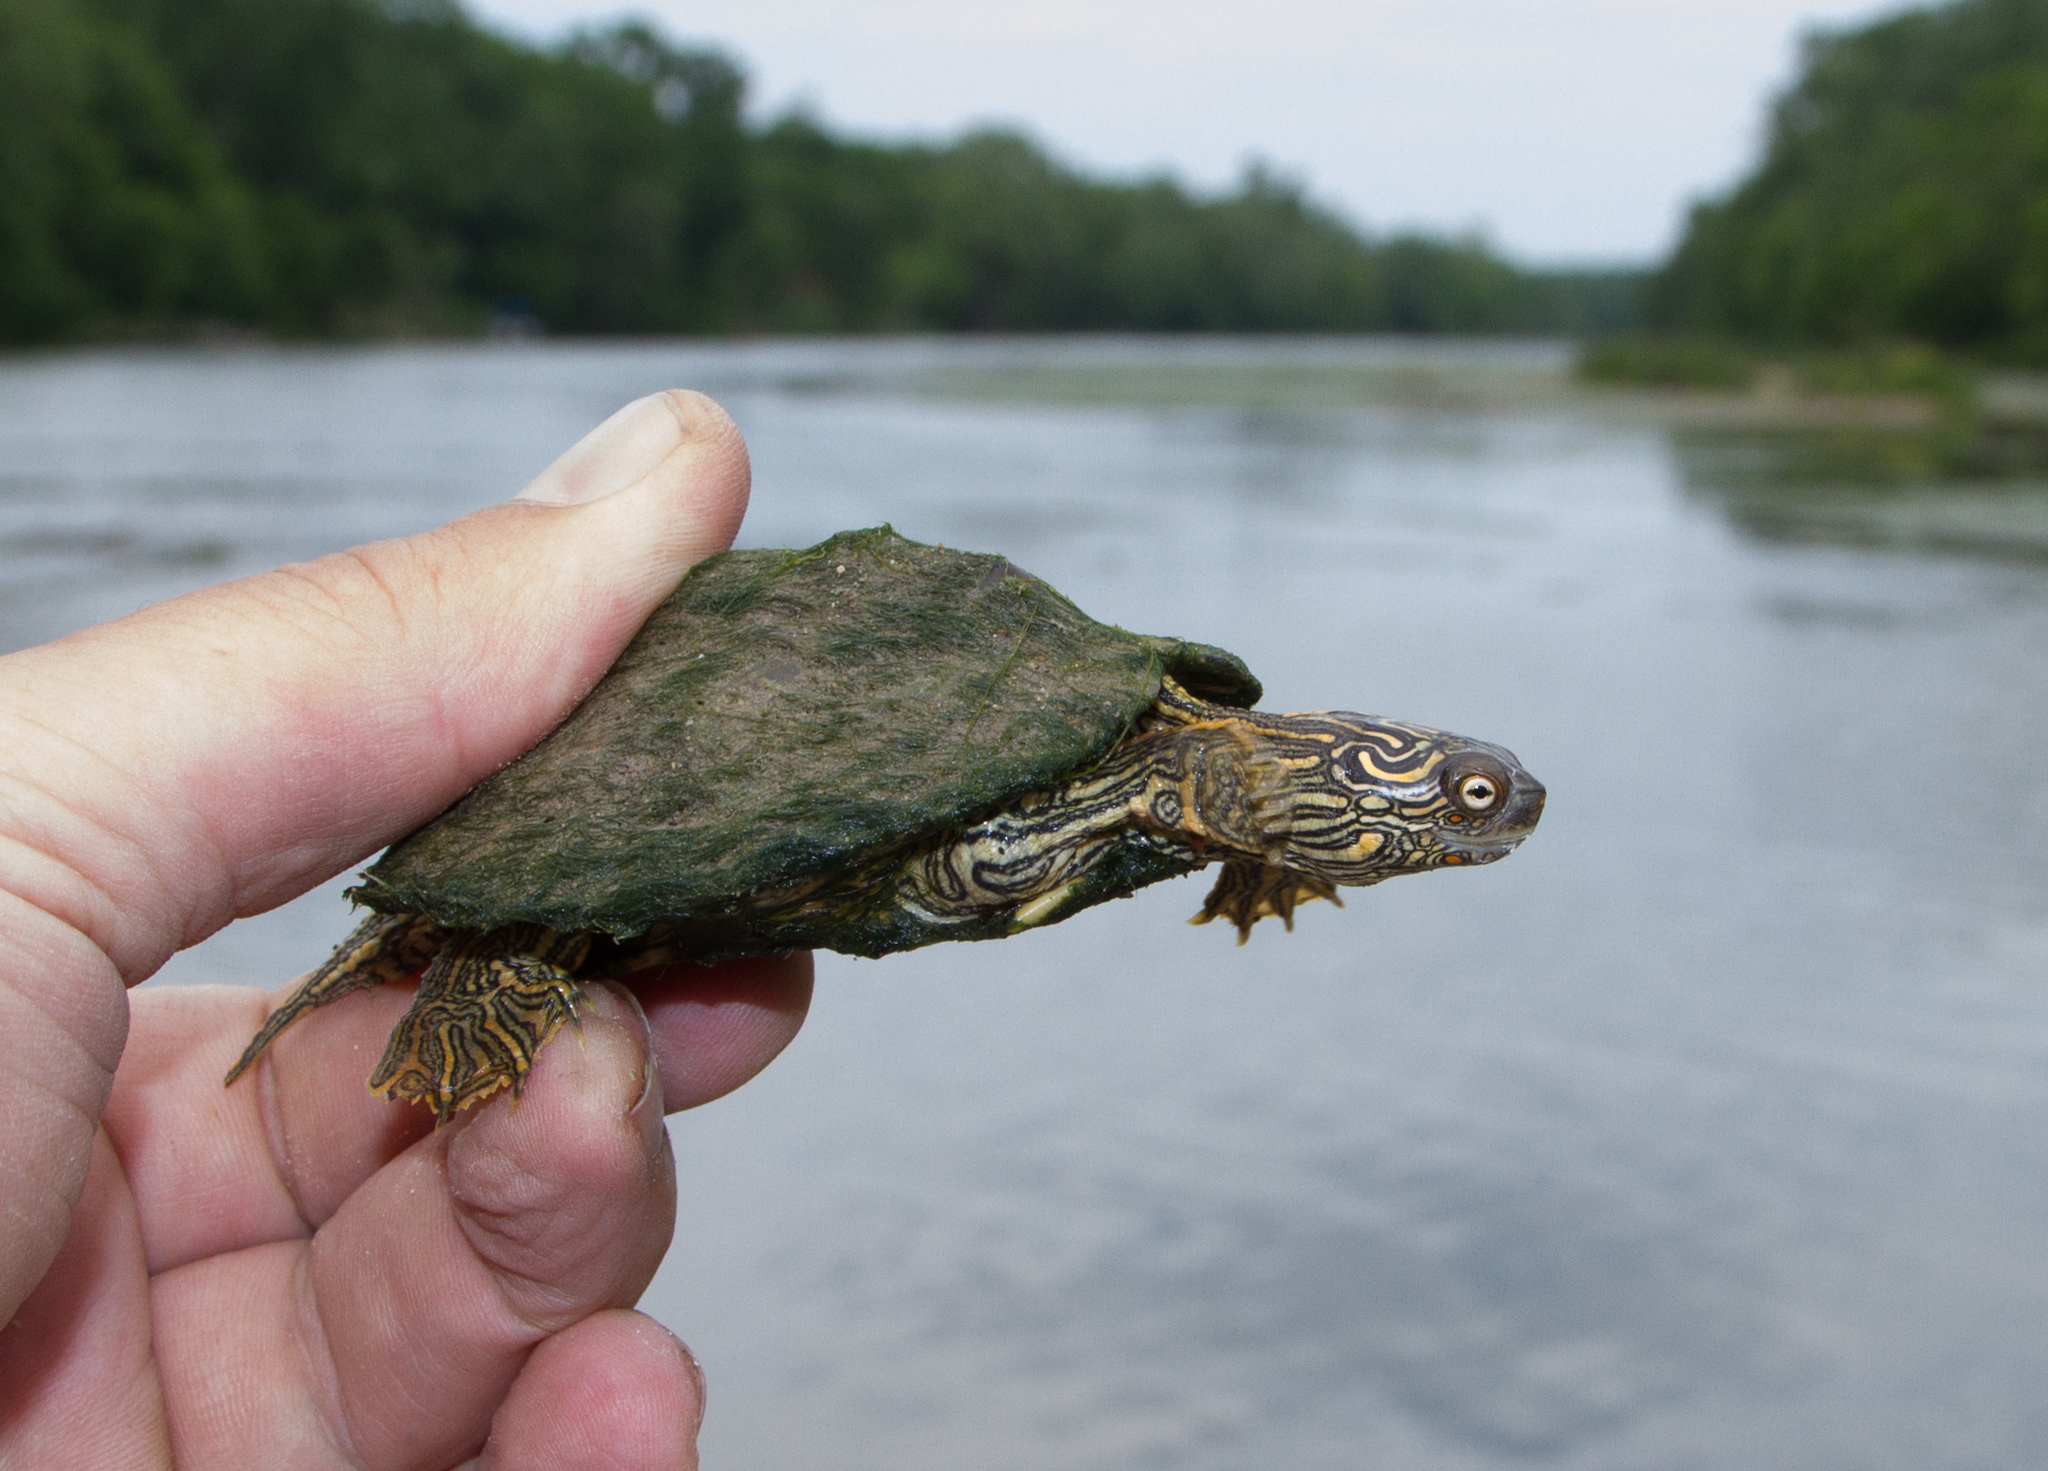 Discussion on this topic: How to Catch Water Turtles, how-to-catch-water-turtles/